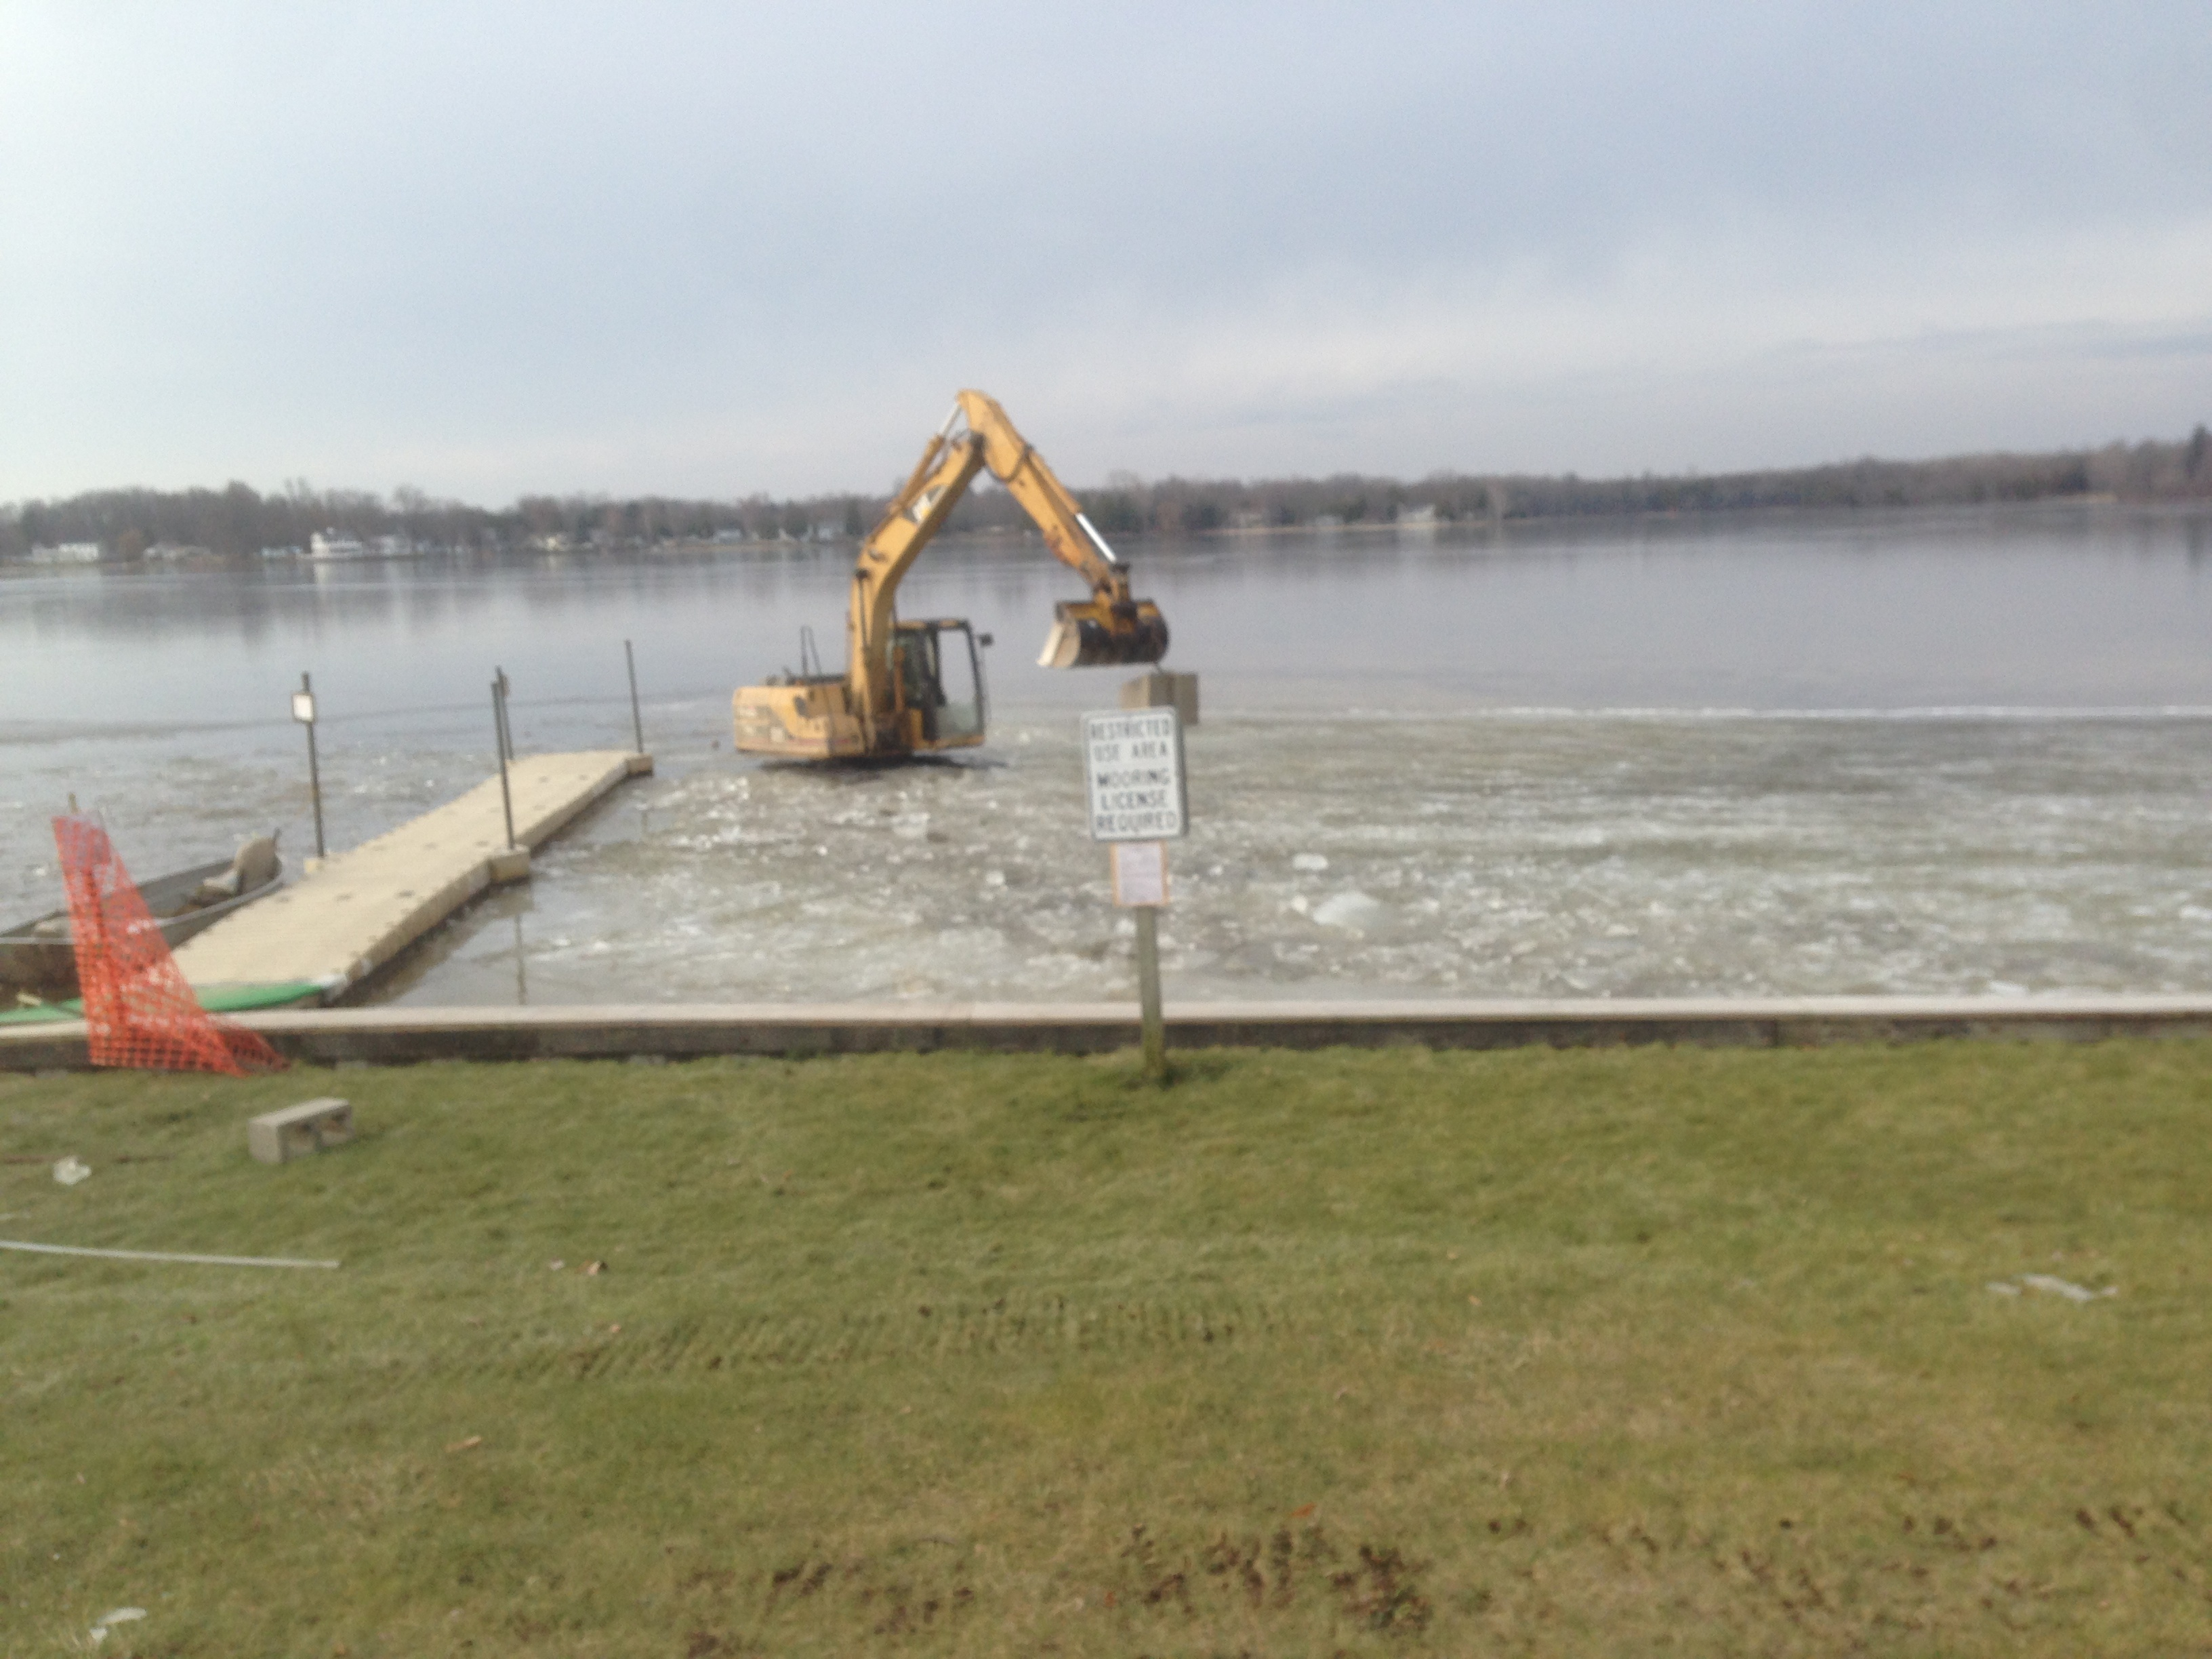 Boat_launch_installation_Michigan_Weidman_Michigan_111.jpg